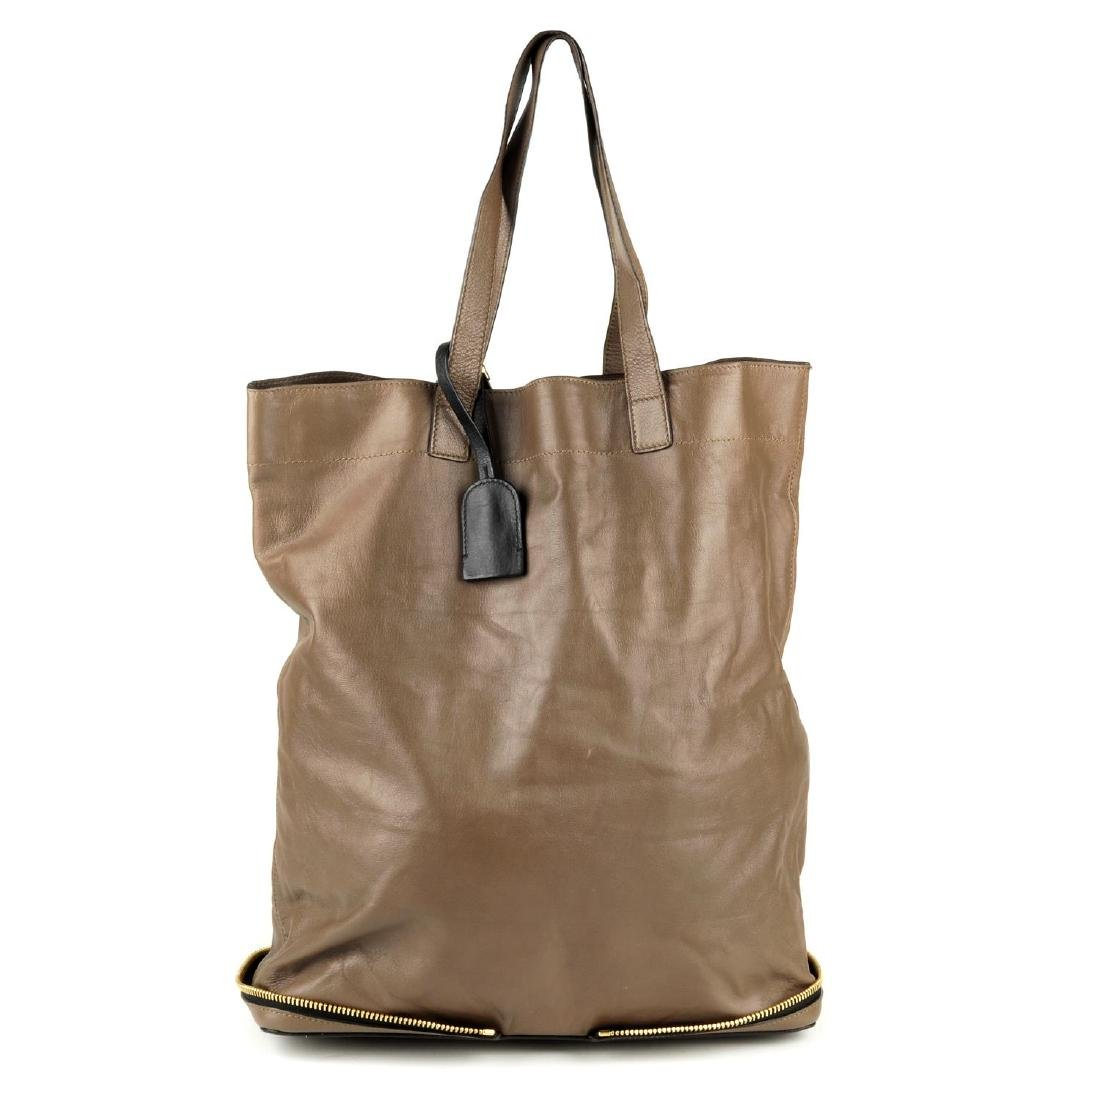 CHLOÉ - a leather Ellen tote. Crafted from taupe brown